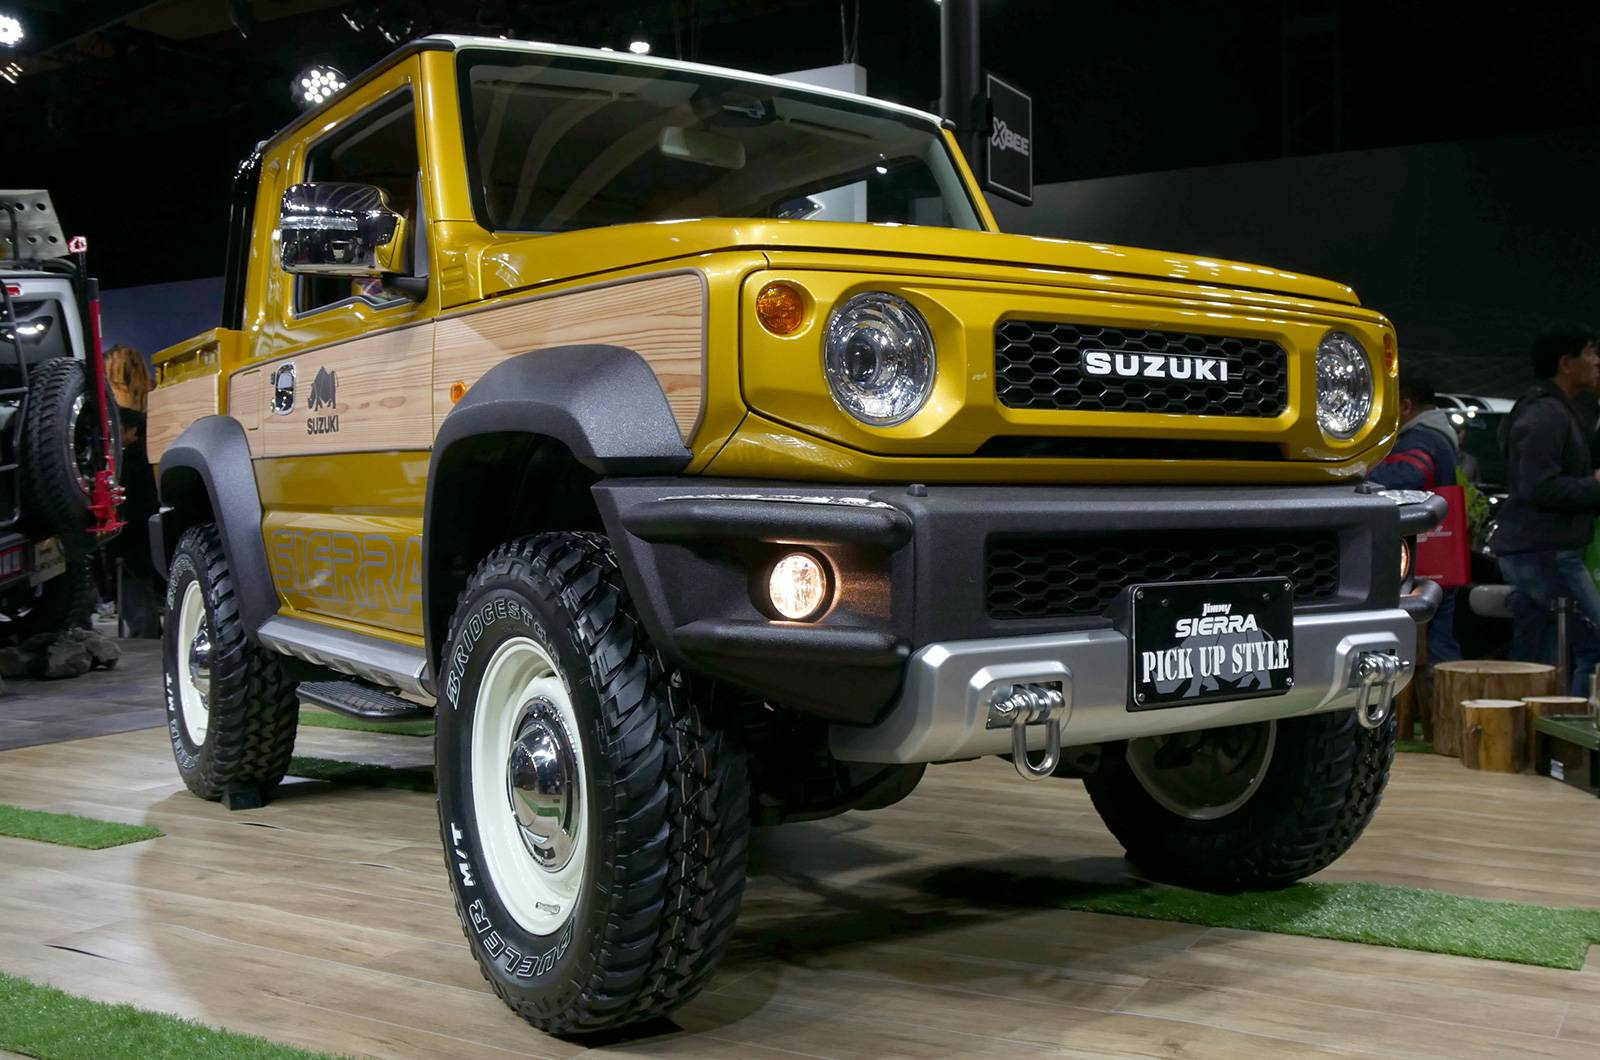 Suzuki Jimny Sierra Pickup Style concept and Jimny Survive concept (2)